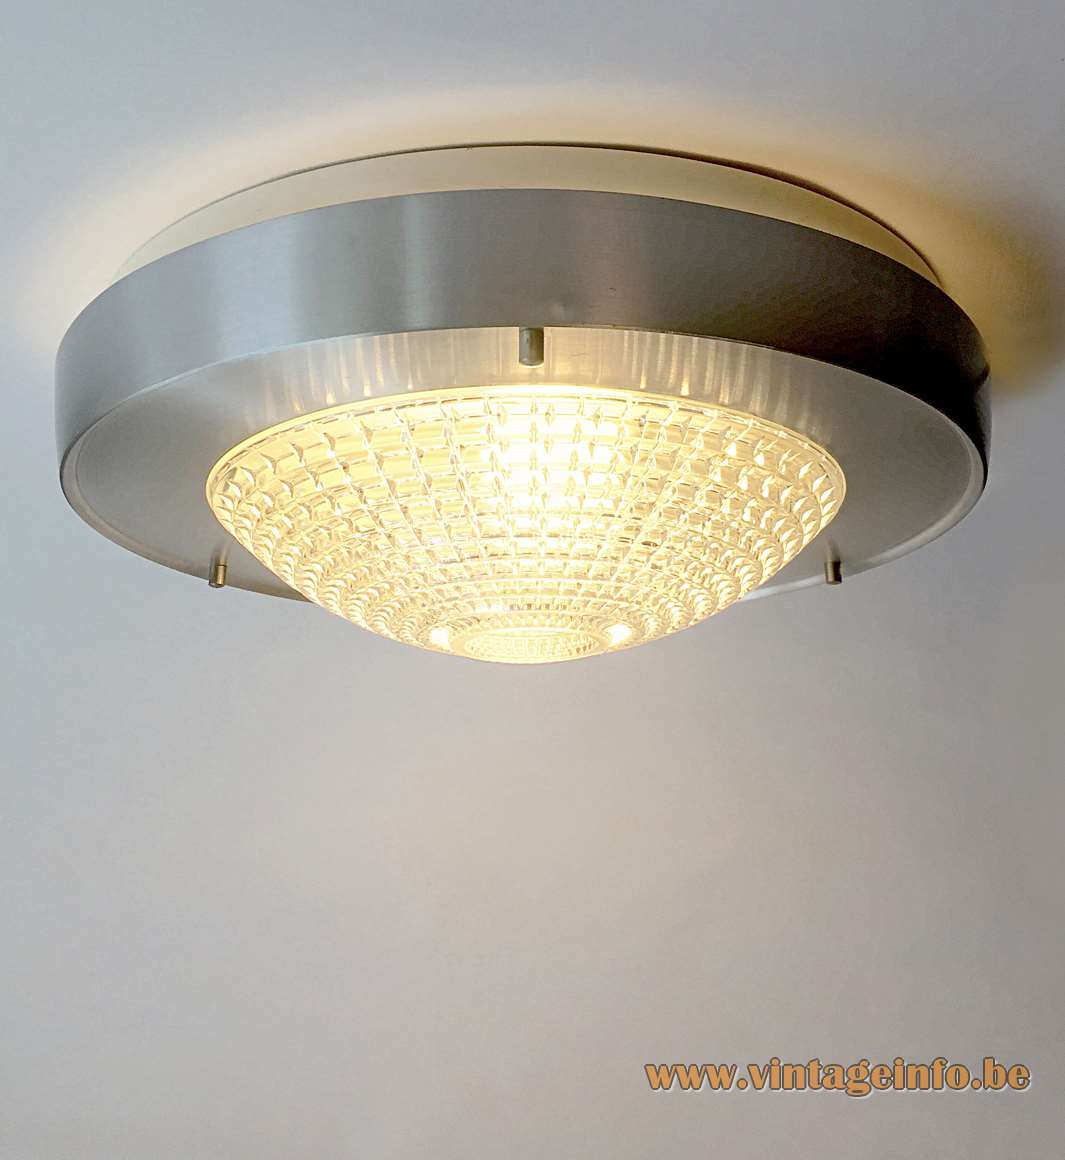 Raak flush mount B-1043 clear pressed embossed glass lampshade aluminium ring 1960s 1970s The Netherlands